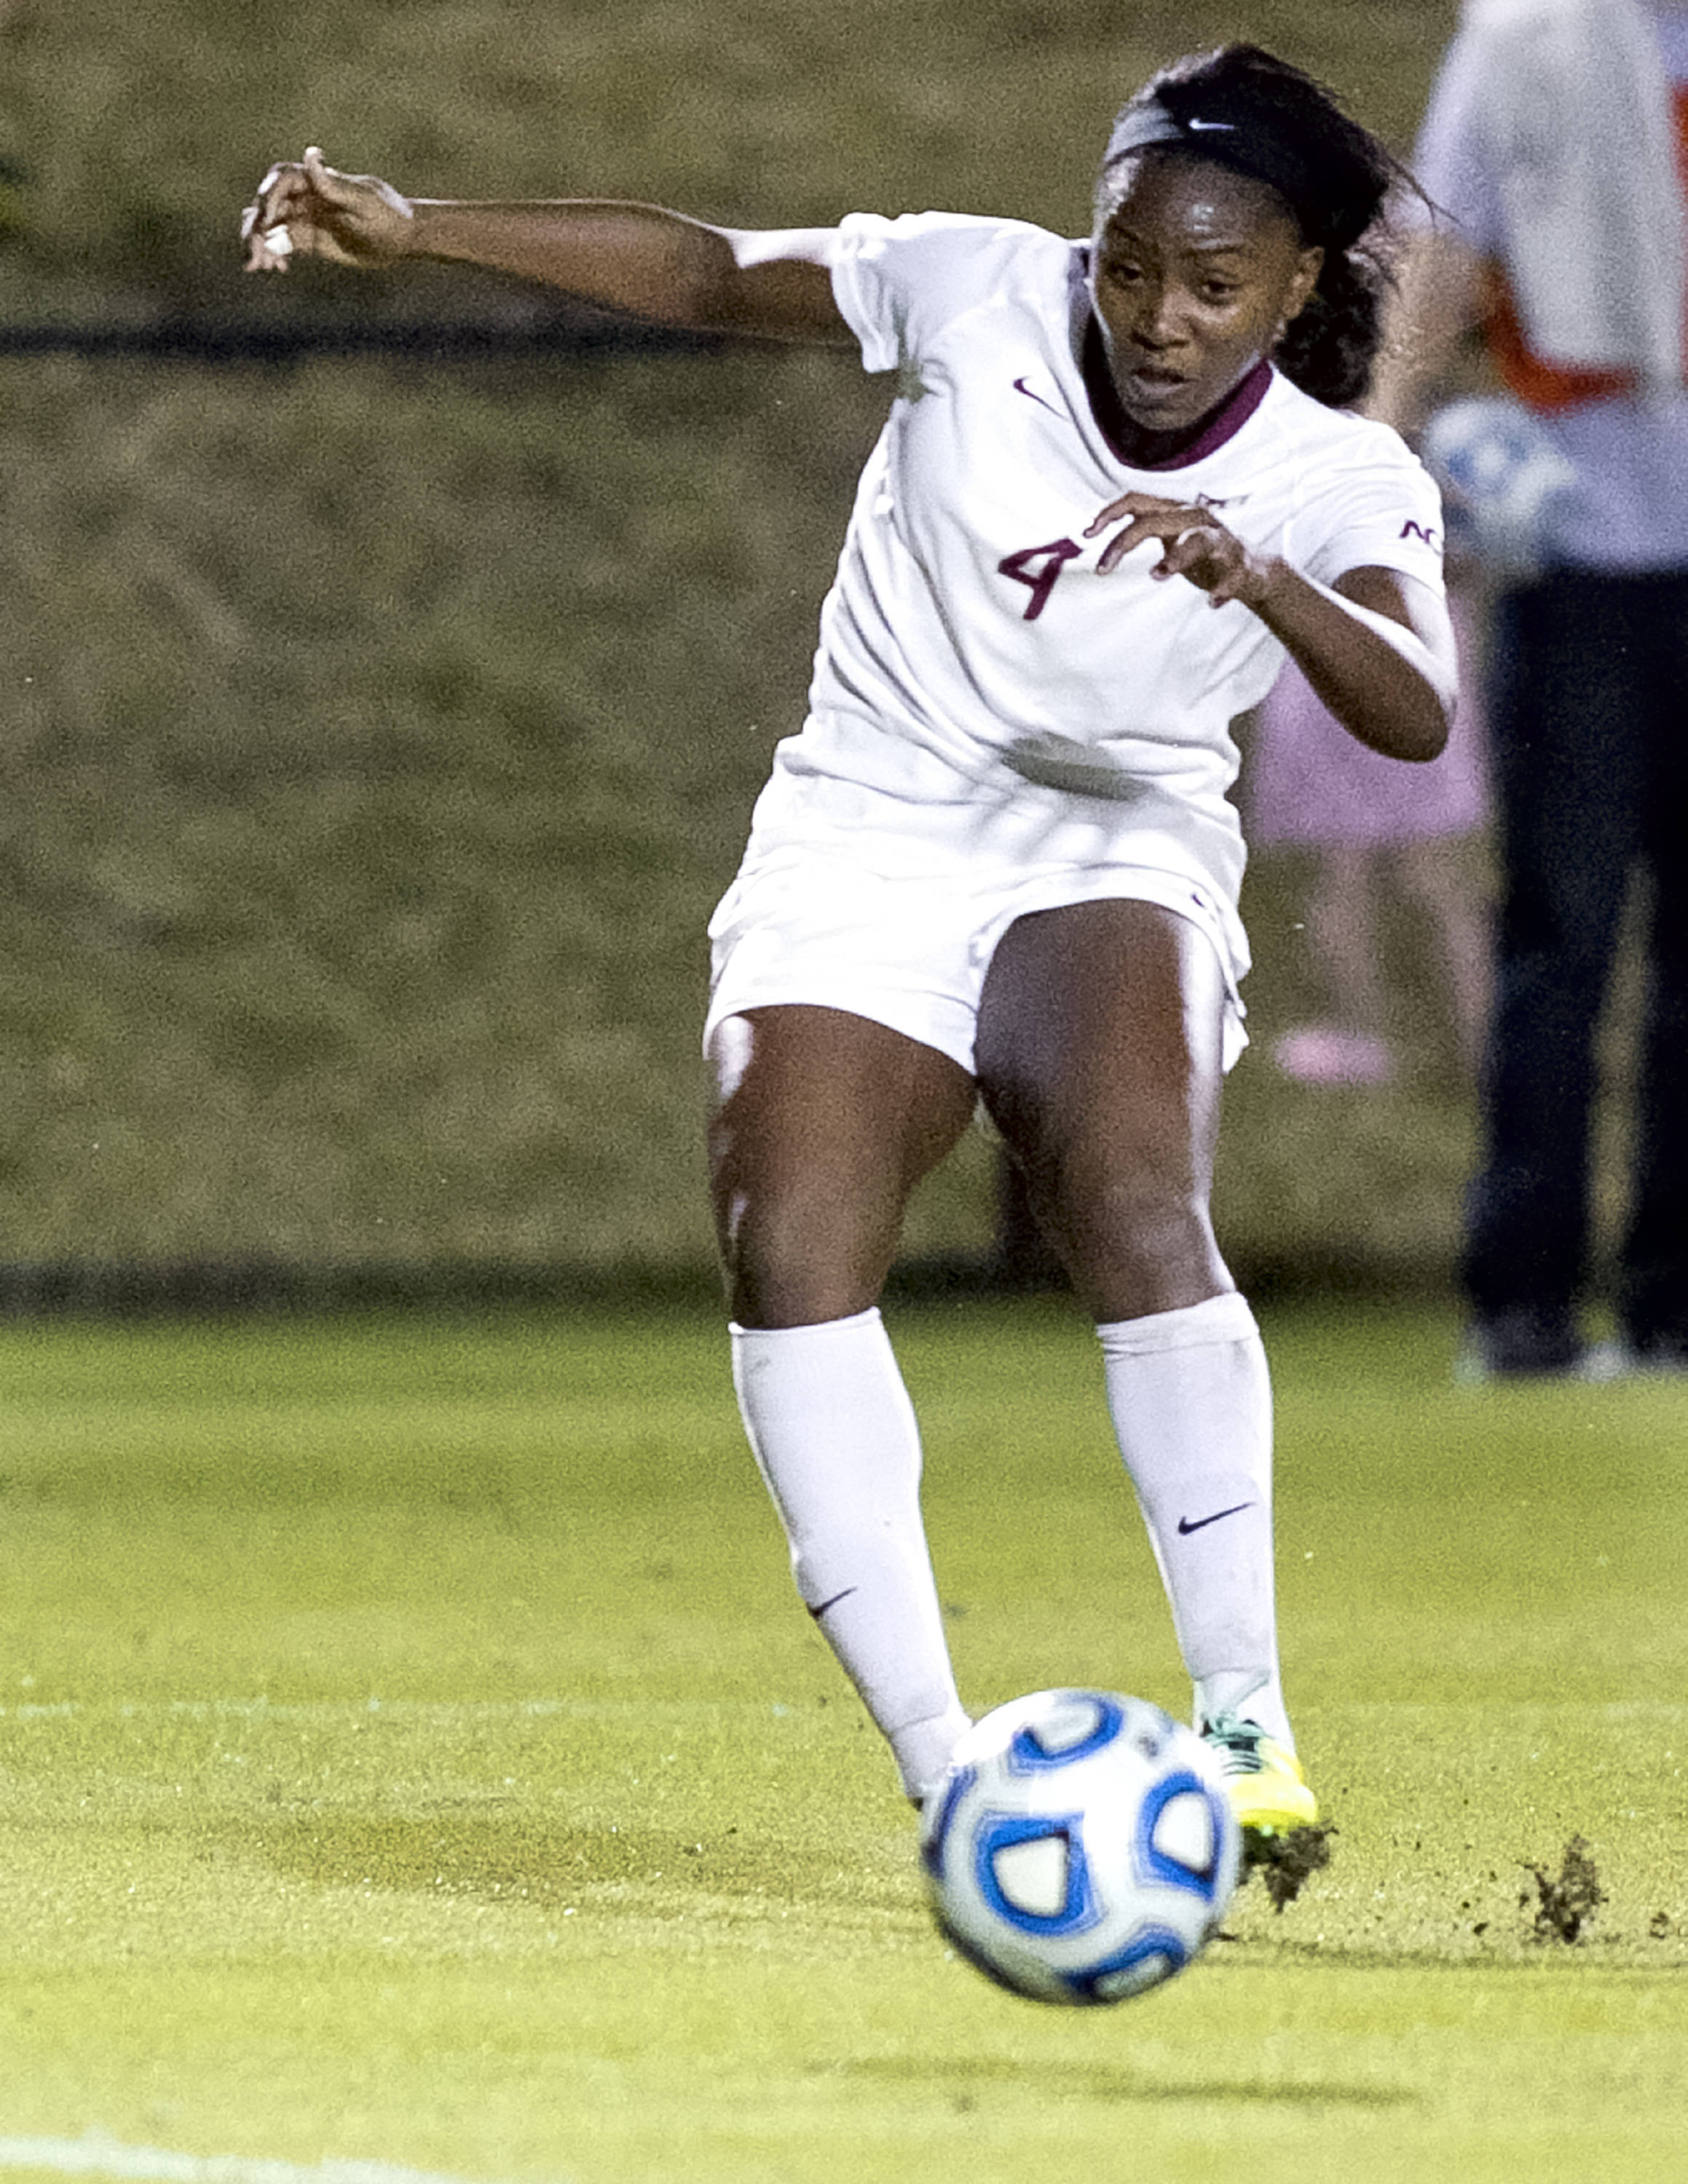 Jamia Fields (4), FSU vs Ole Miss, 11-17-13, 2nd round NCAA Tournament (Photo by Steve Musco)